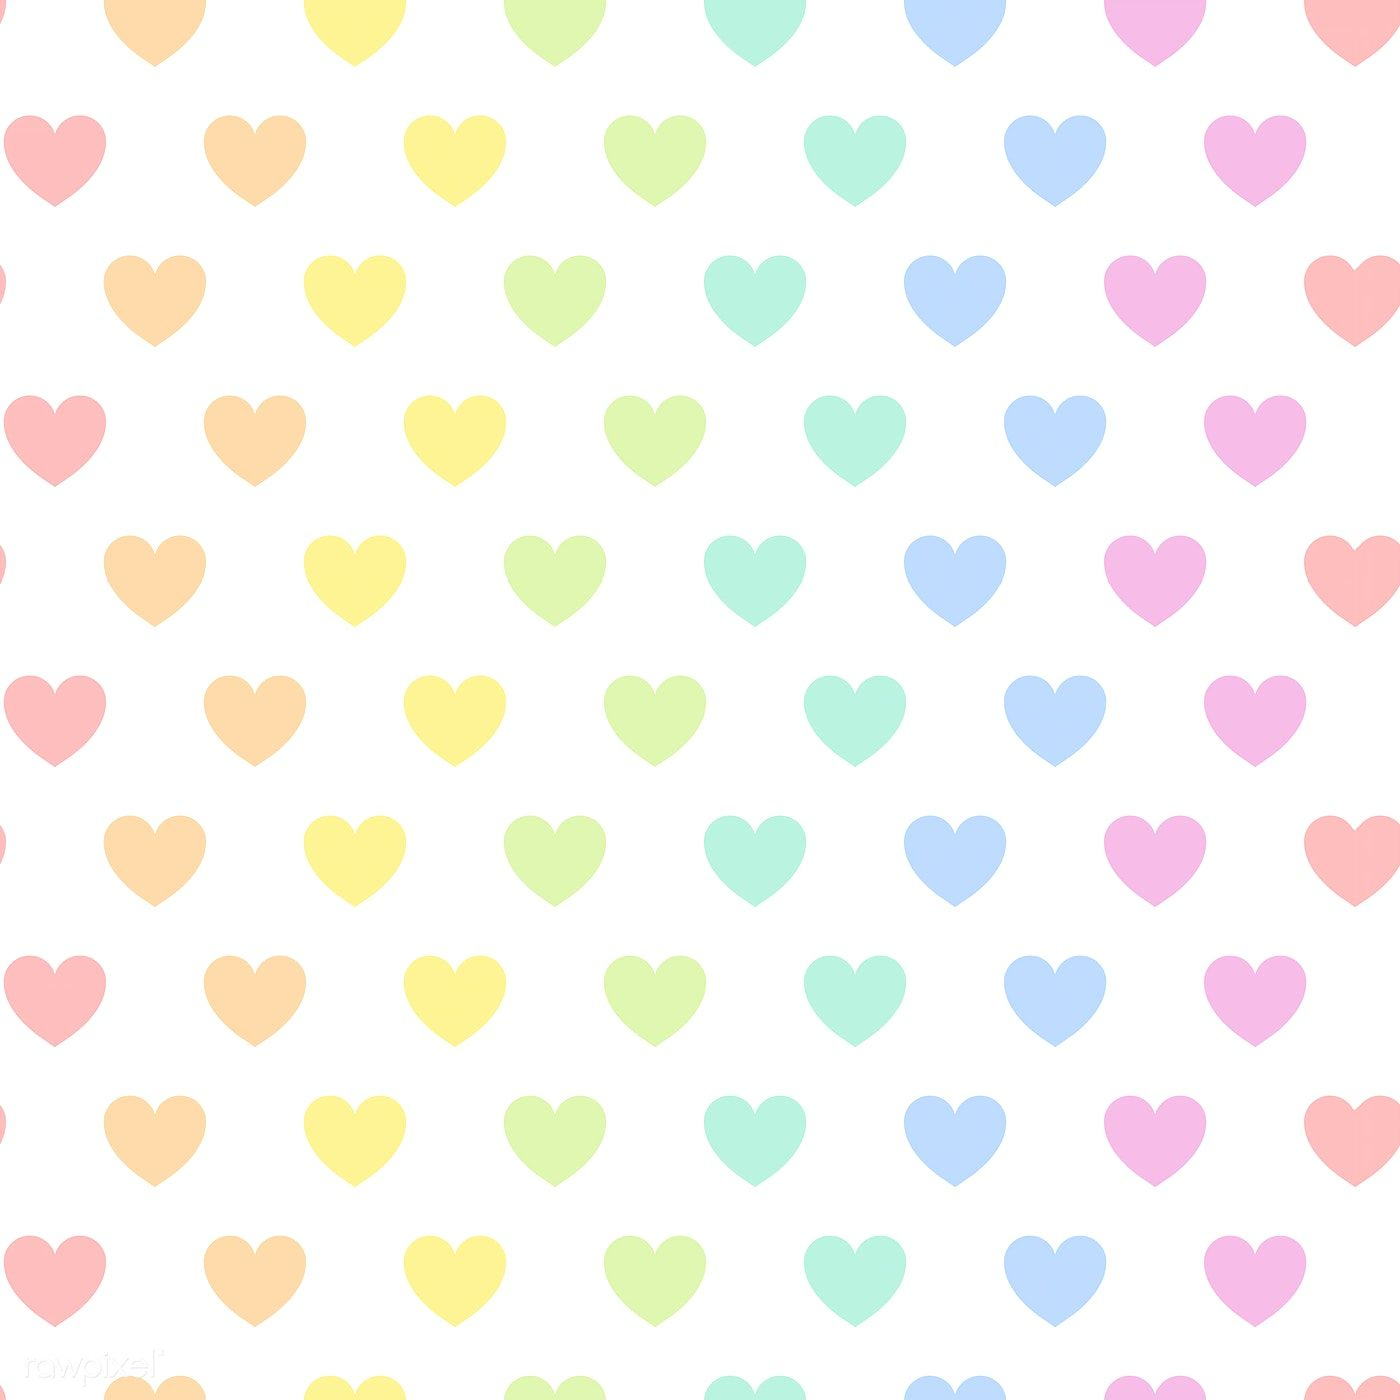 Seamless Colorful Heart Pattern Vector Free Image By Rawpixel Com Manotang Heart Pattern Background Heart Patterns Colorful Heart